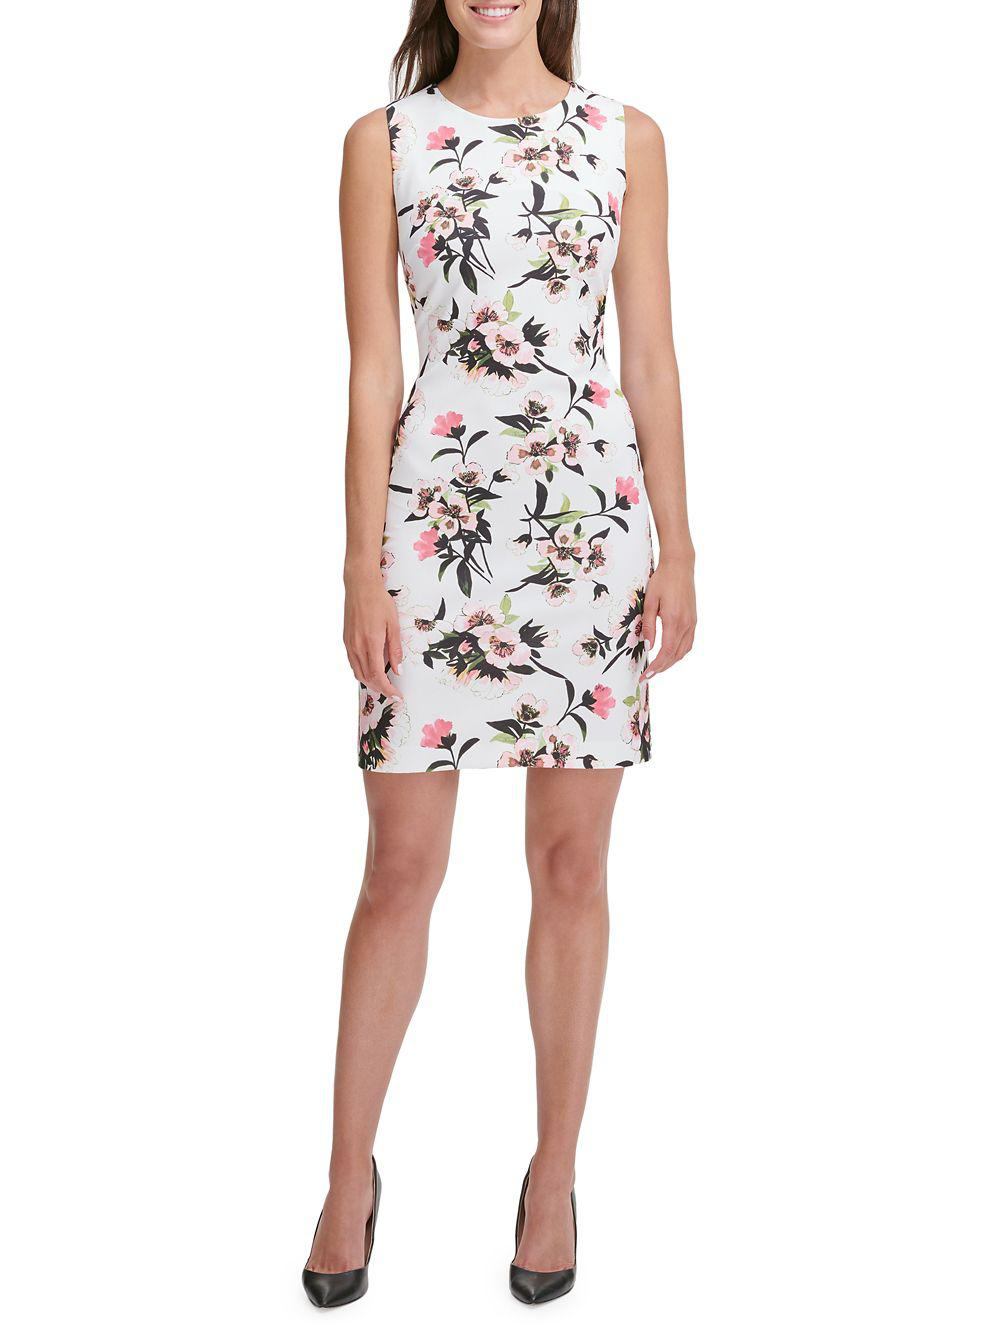 d3a56eabe22 Tommy Hilfiger Floral Scuba Sheath Dress in White - Lyst